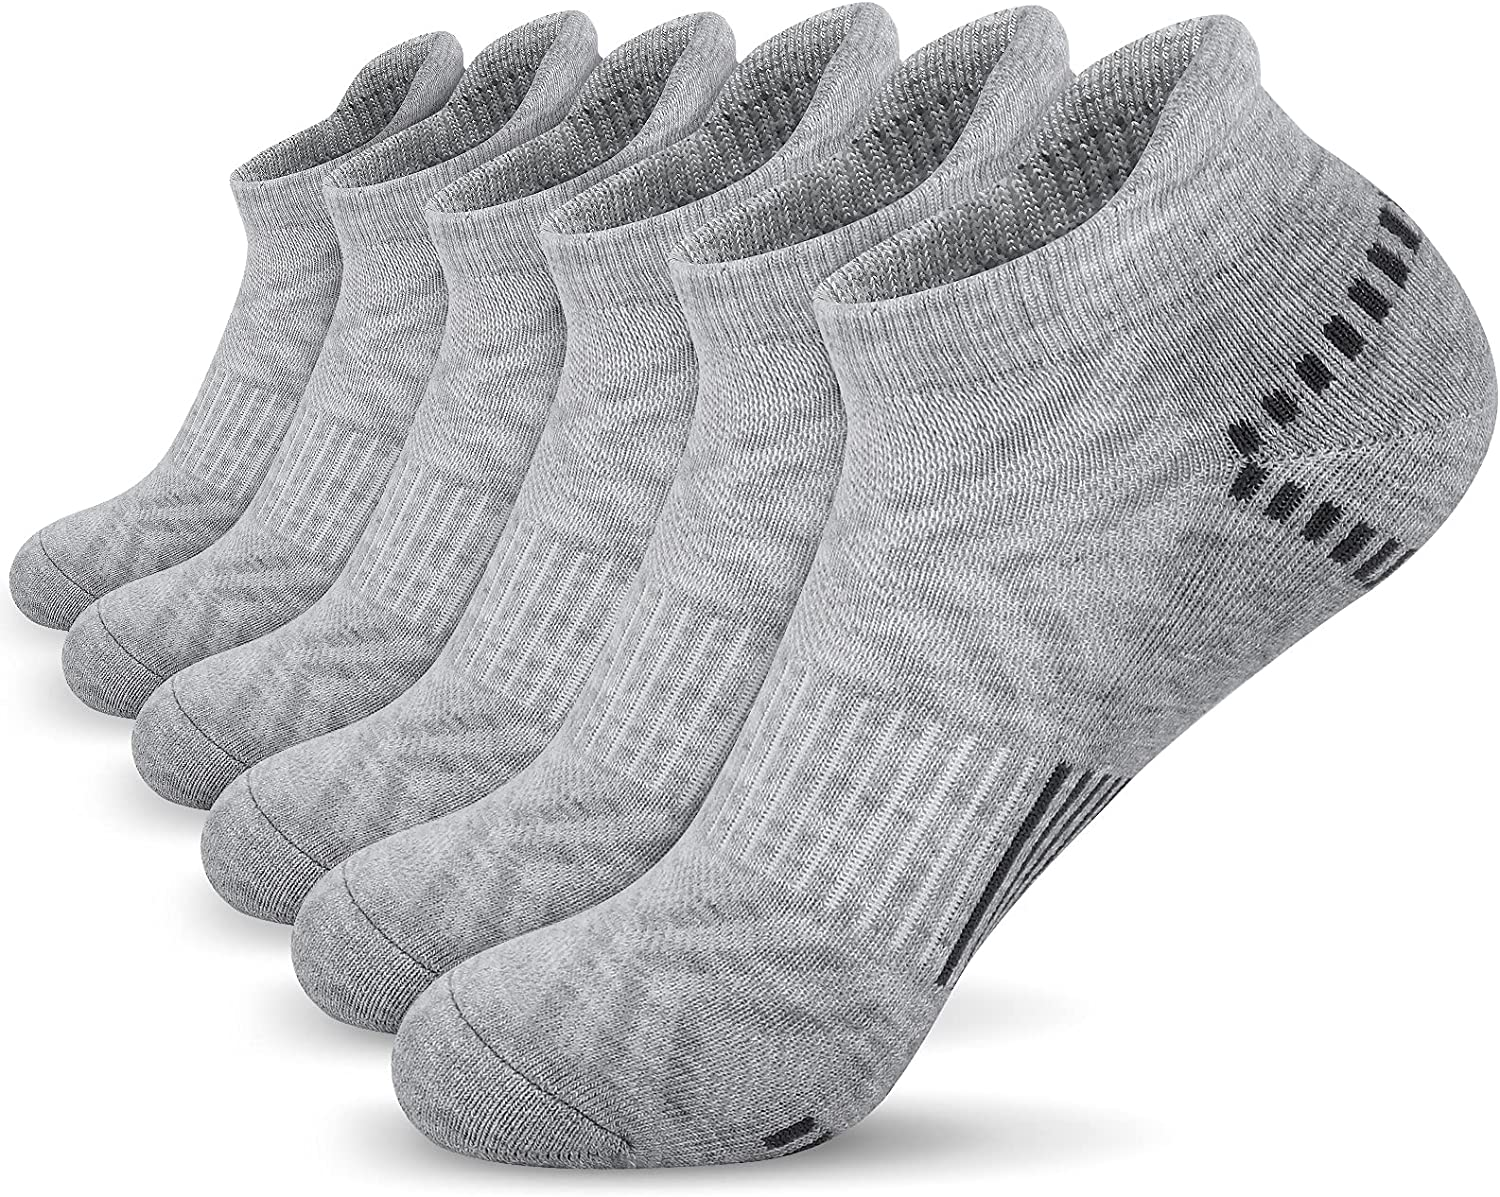 Airacker Athletic Running Socks Ranking TOP20 6 Sport Breathable Pairs Low Cut Max 49% OFF